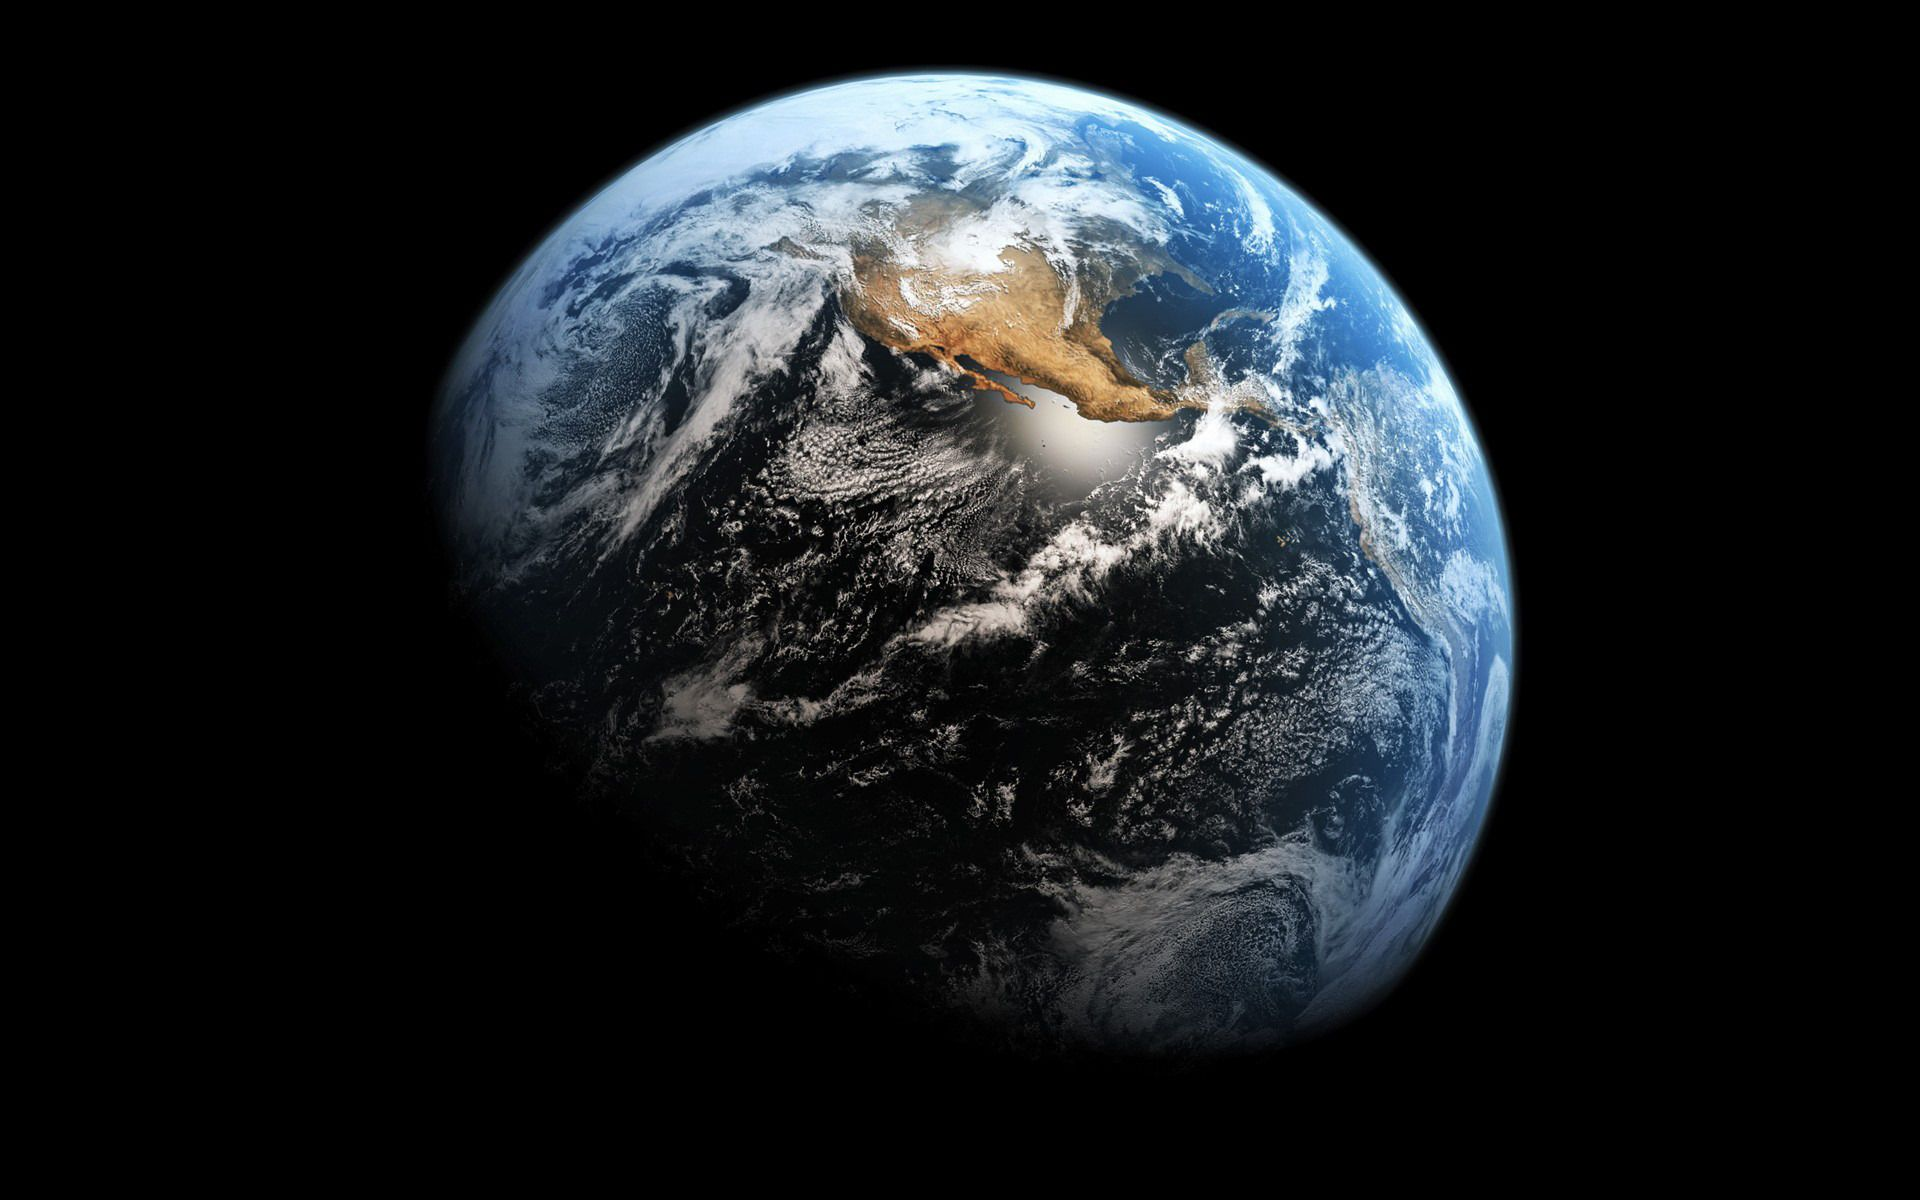 Earth Hd Wallpaper Free Download Space Wallpaper Best Cool